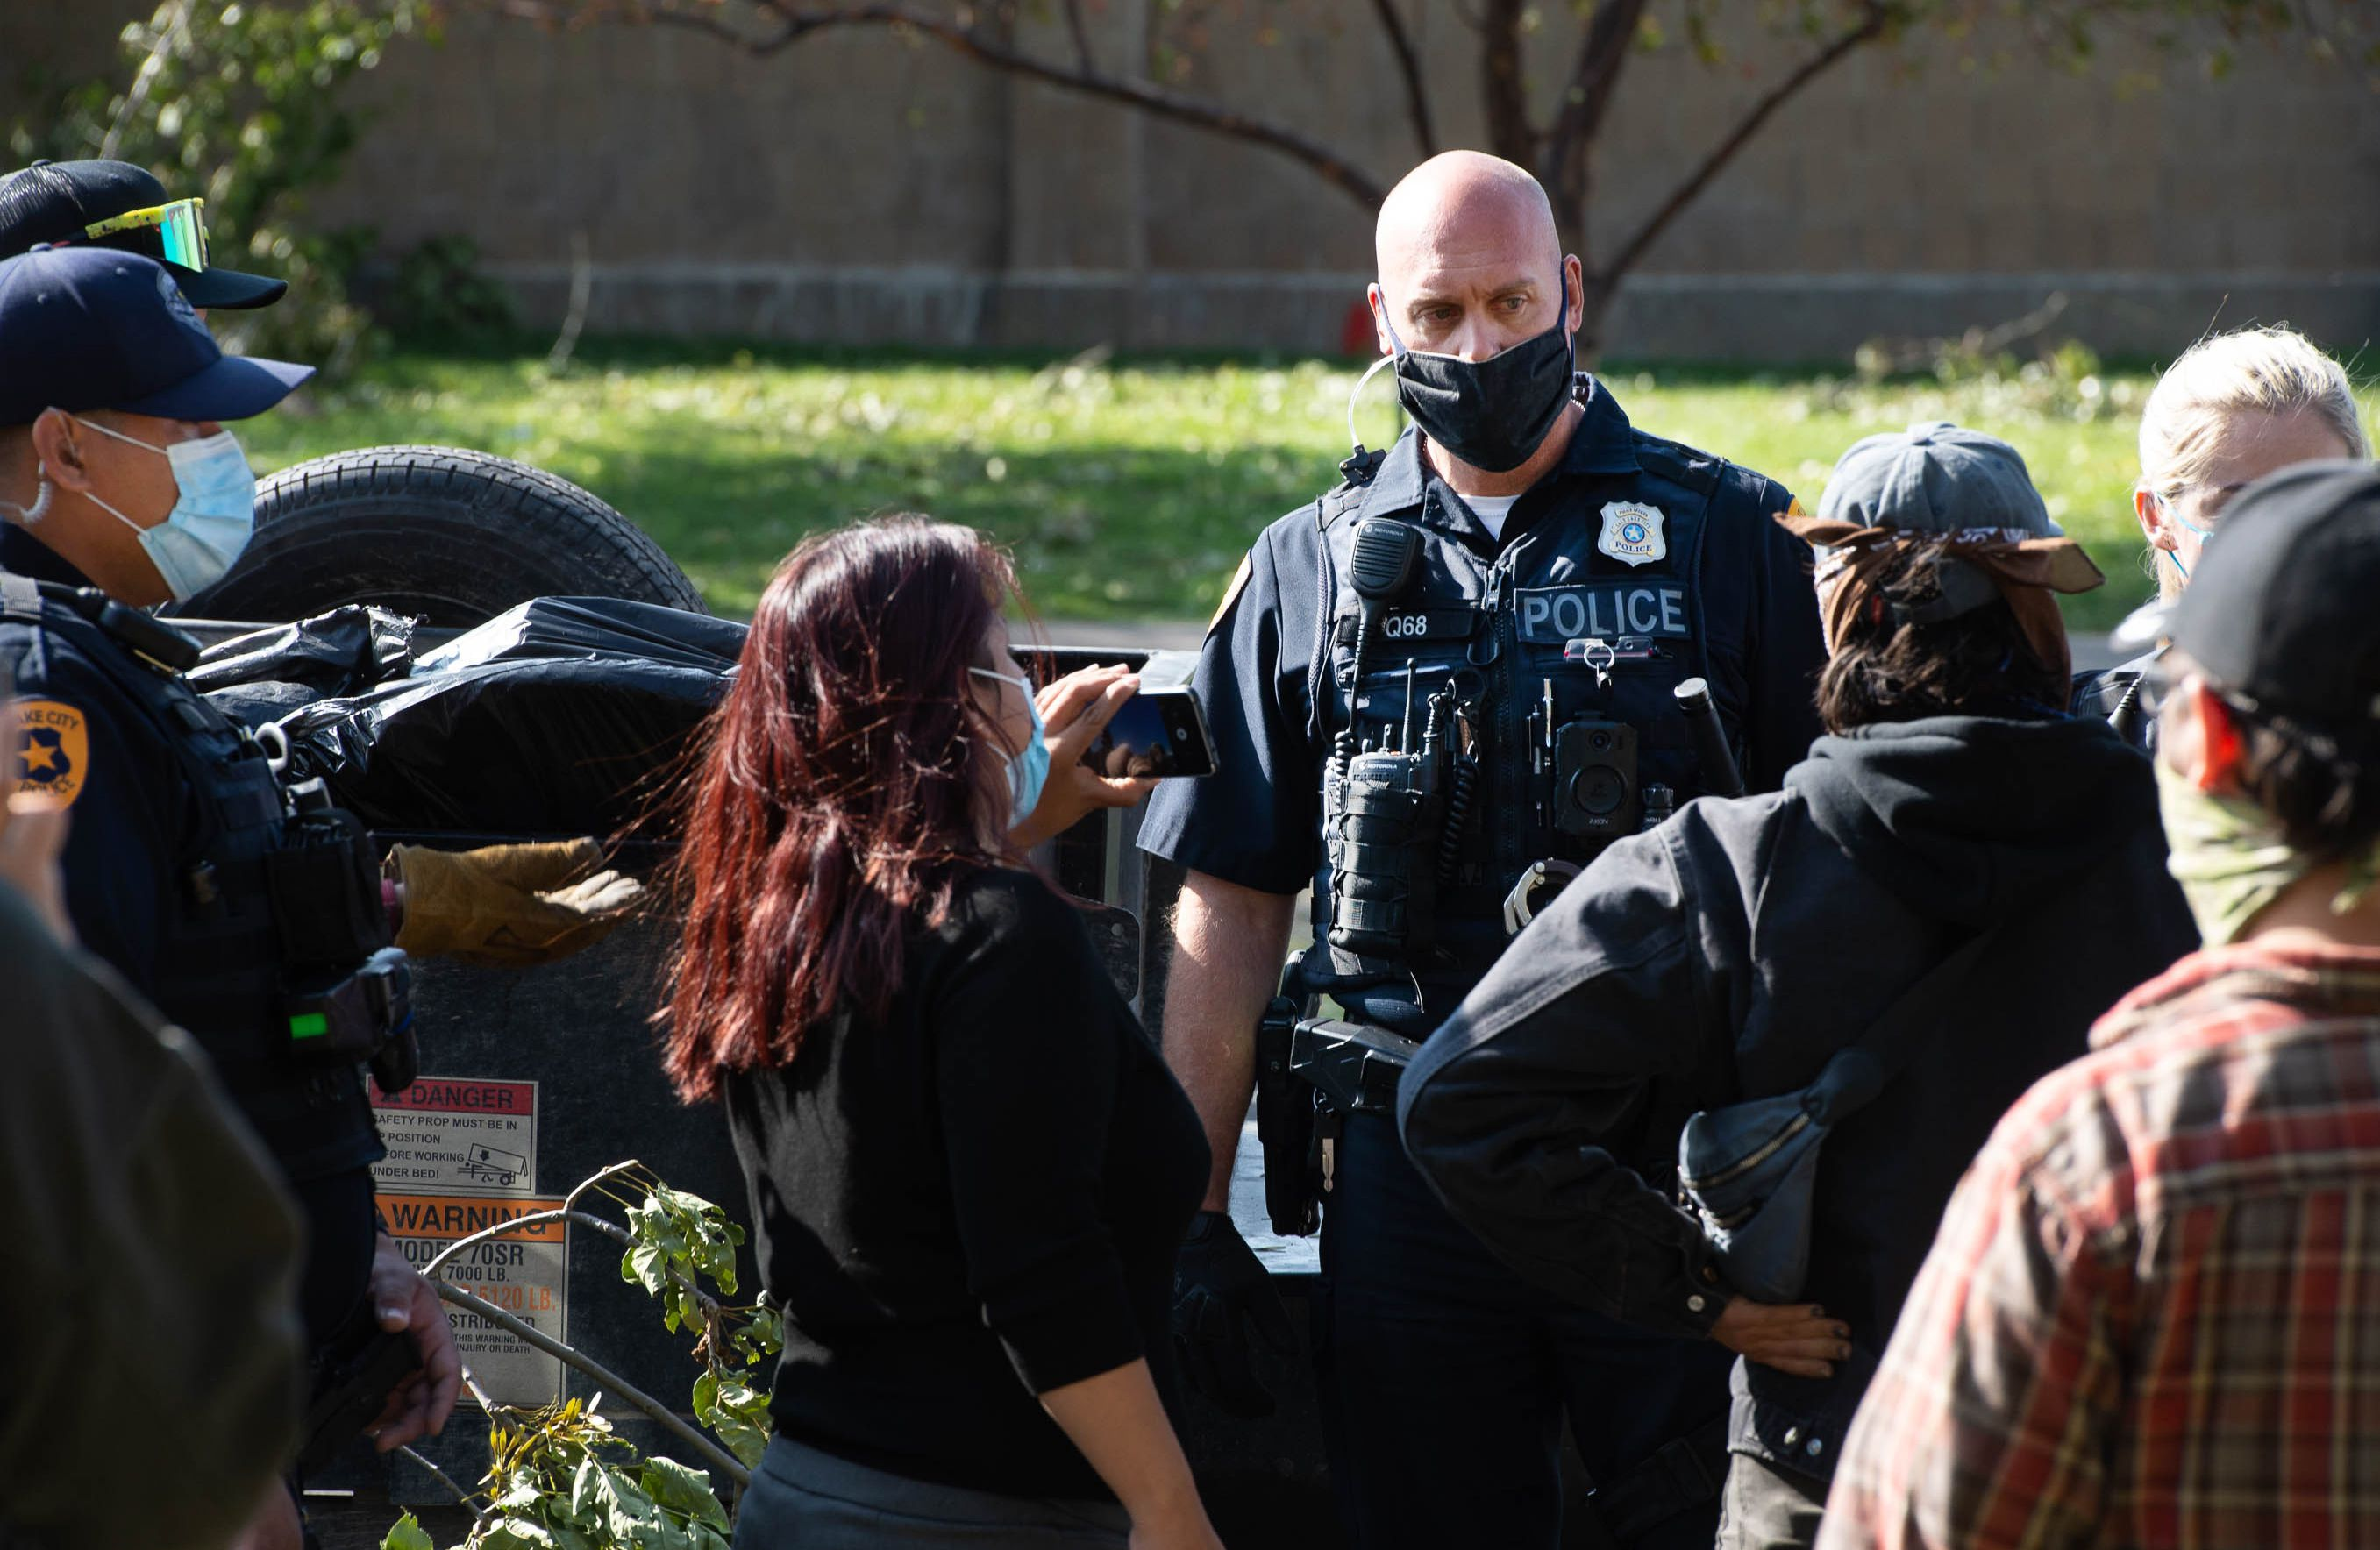 (Francisco Kjolseth  |  The Salt Lake Tribune) Police are confronted by homeless advocates as the Salt Lake County Health Department forces a clean up of homeless camps set up near Taufer Park in Salt Lake City on Thursday, Sept. 10, 2020.